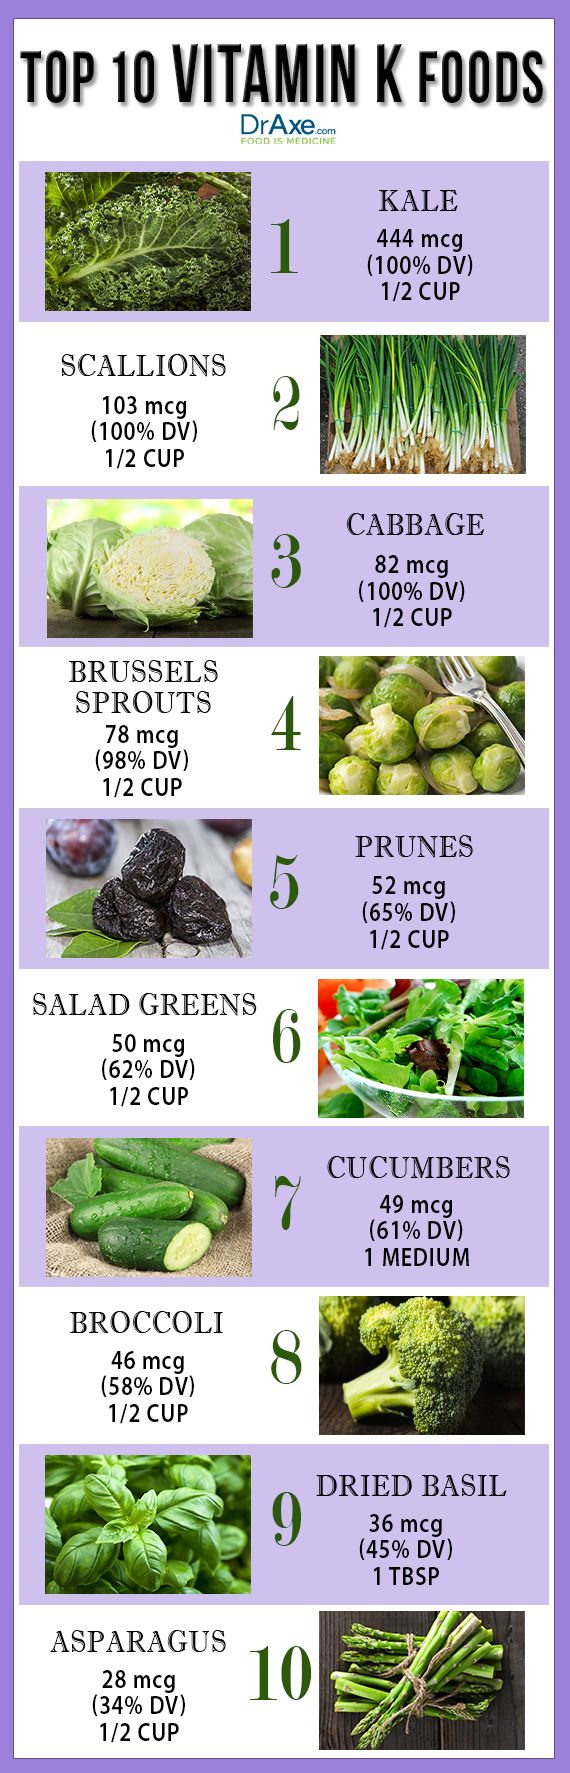 Vitamin K plays a vital role in healthy skin and hair, strong bones, heart health and cancer prevention. Try these Top 10 Vitamin K Rich Foods!